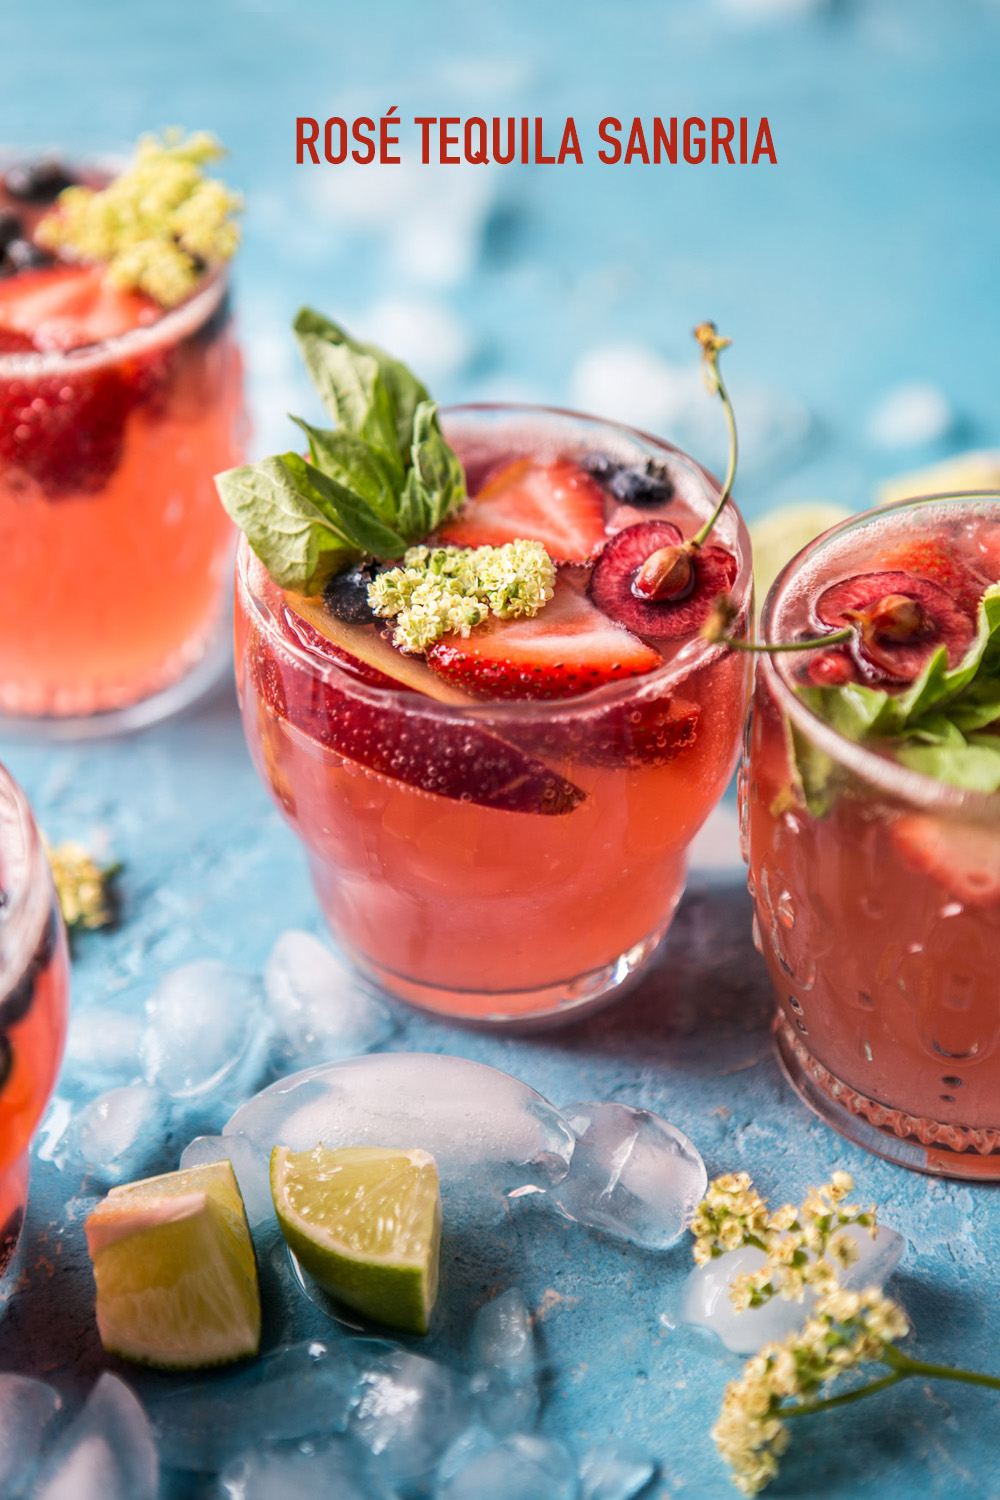 rose tequila sangria recipe